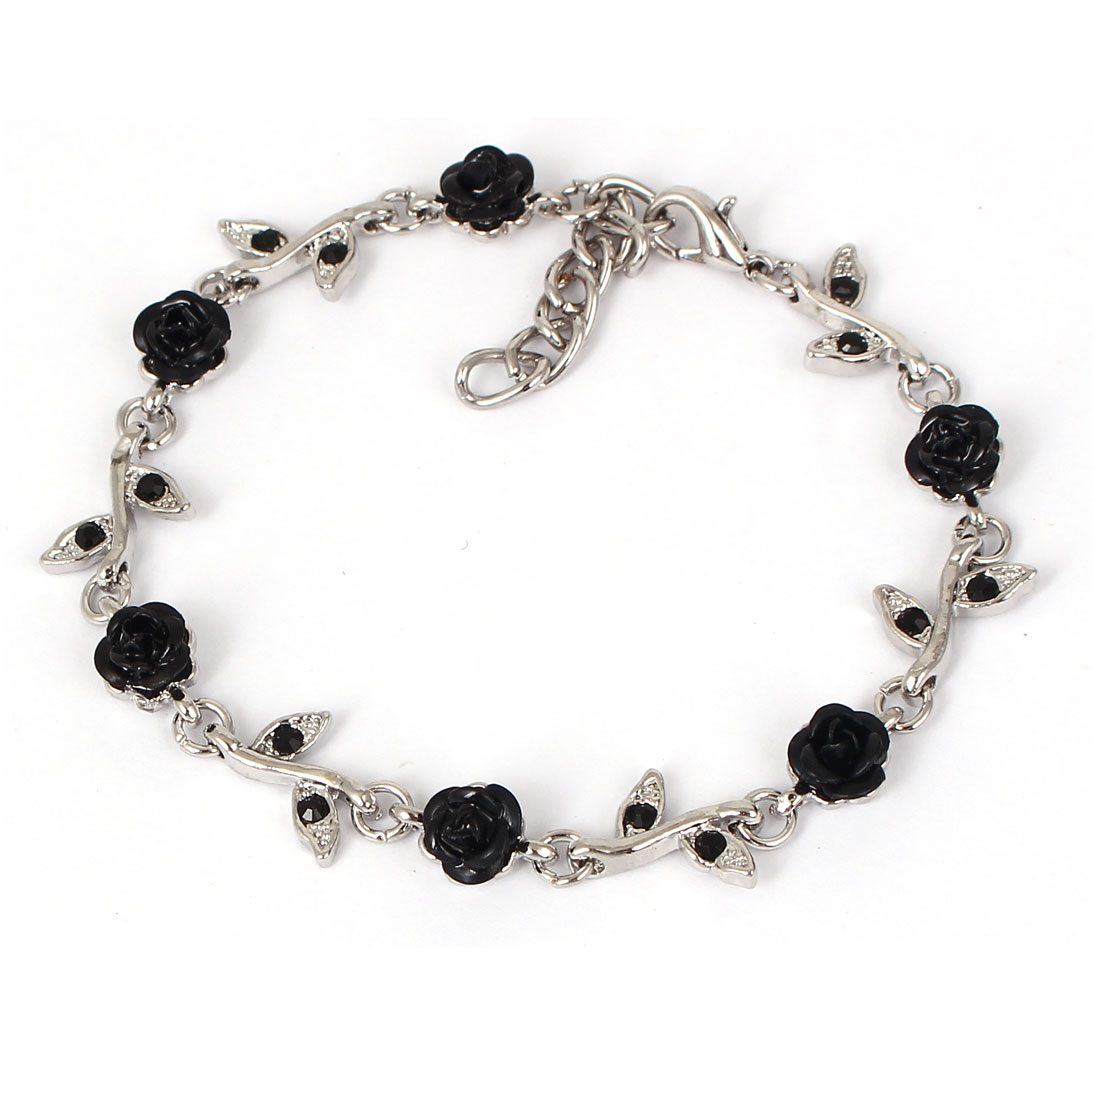 Fashion Jewelry Rose Flower Crystal Decor Alloy Chain Bracelet Silver Tone Black